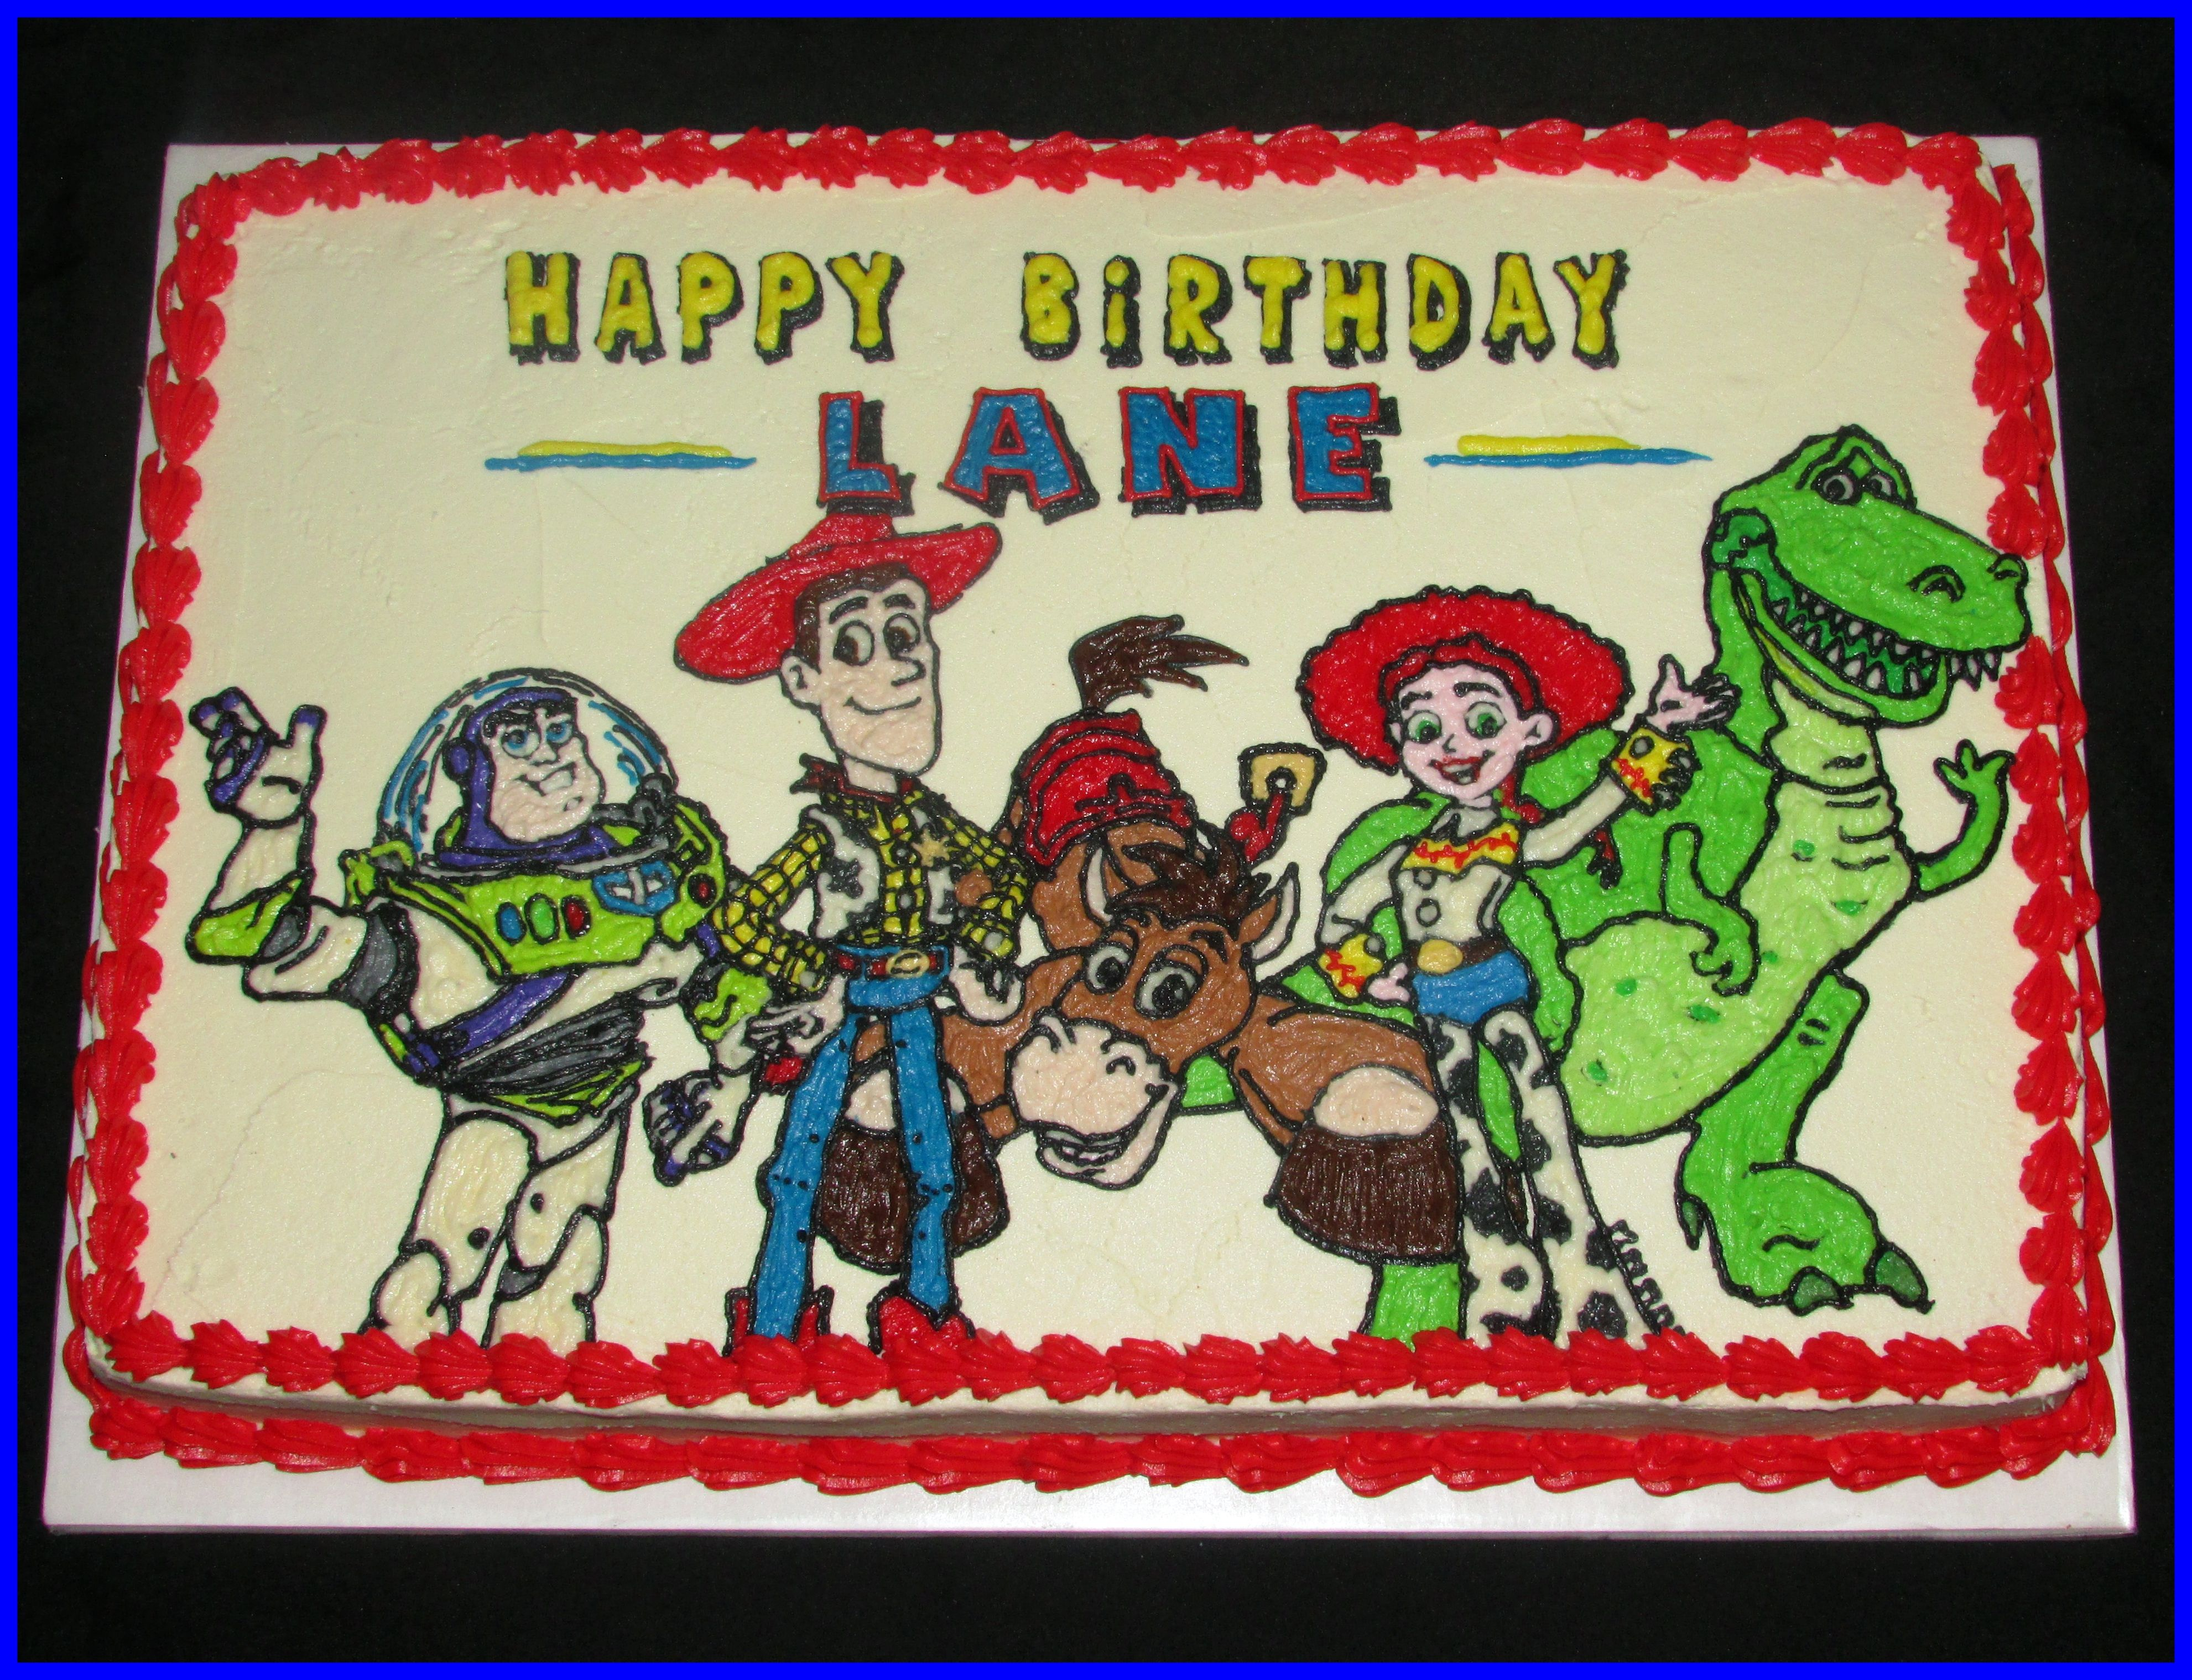 Jessie from toy story bedding - Toy Story Cake Buttercream Icing Only On A 1 2 Sheet Cake